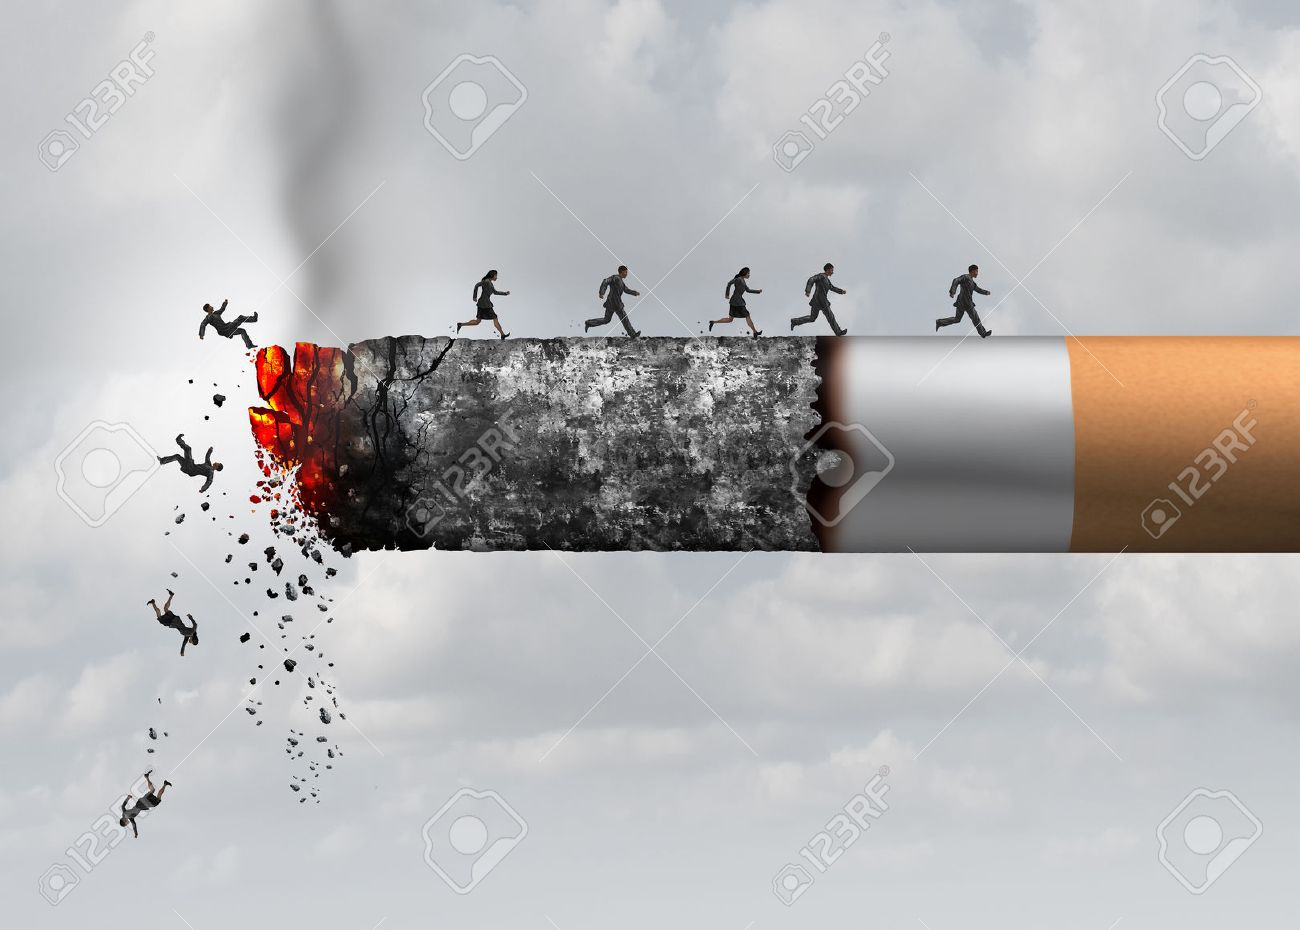 Smoking death and danger concept as a cigarette burning with people falling and escaping the hot burning ash as a metaphor for toxic smoke exposure causing lung cancer and lethal health risks with 3D illustration elements. Standard-Bild - 60688204